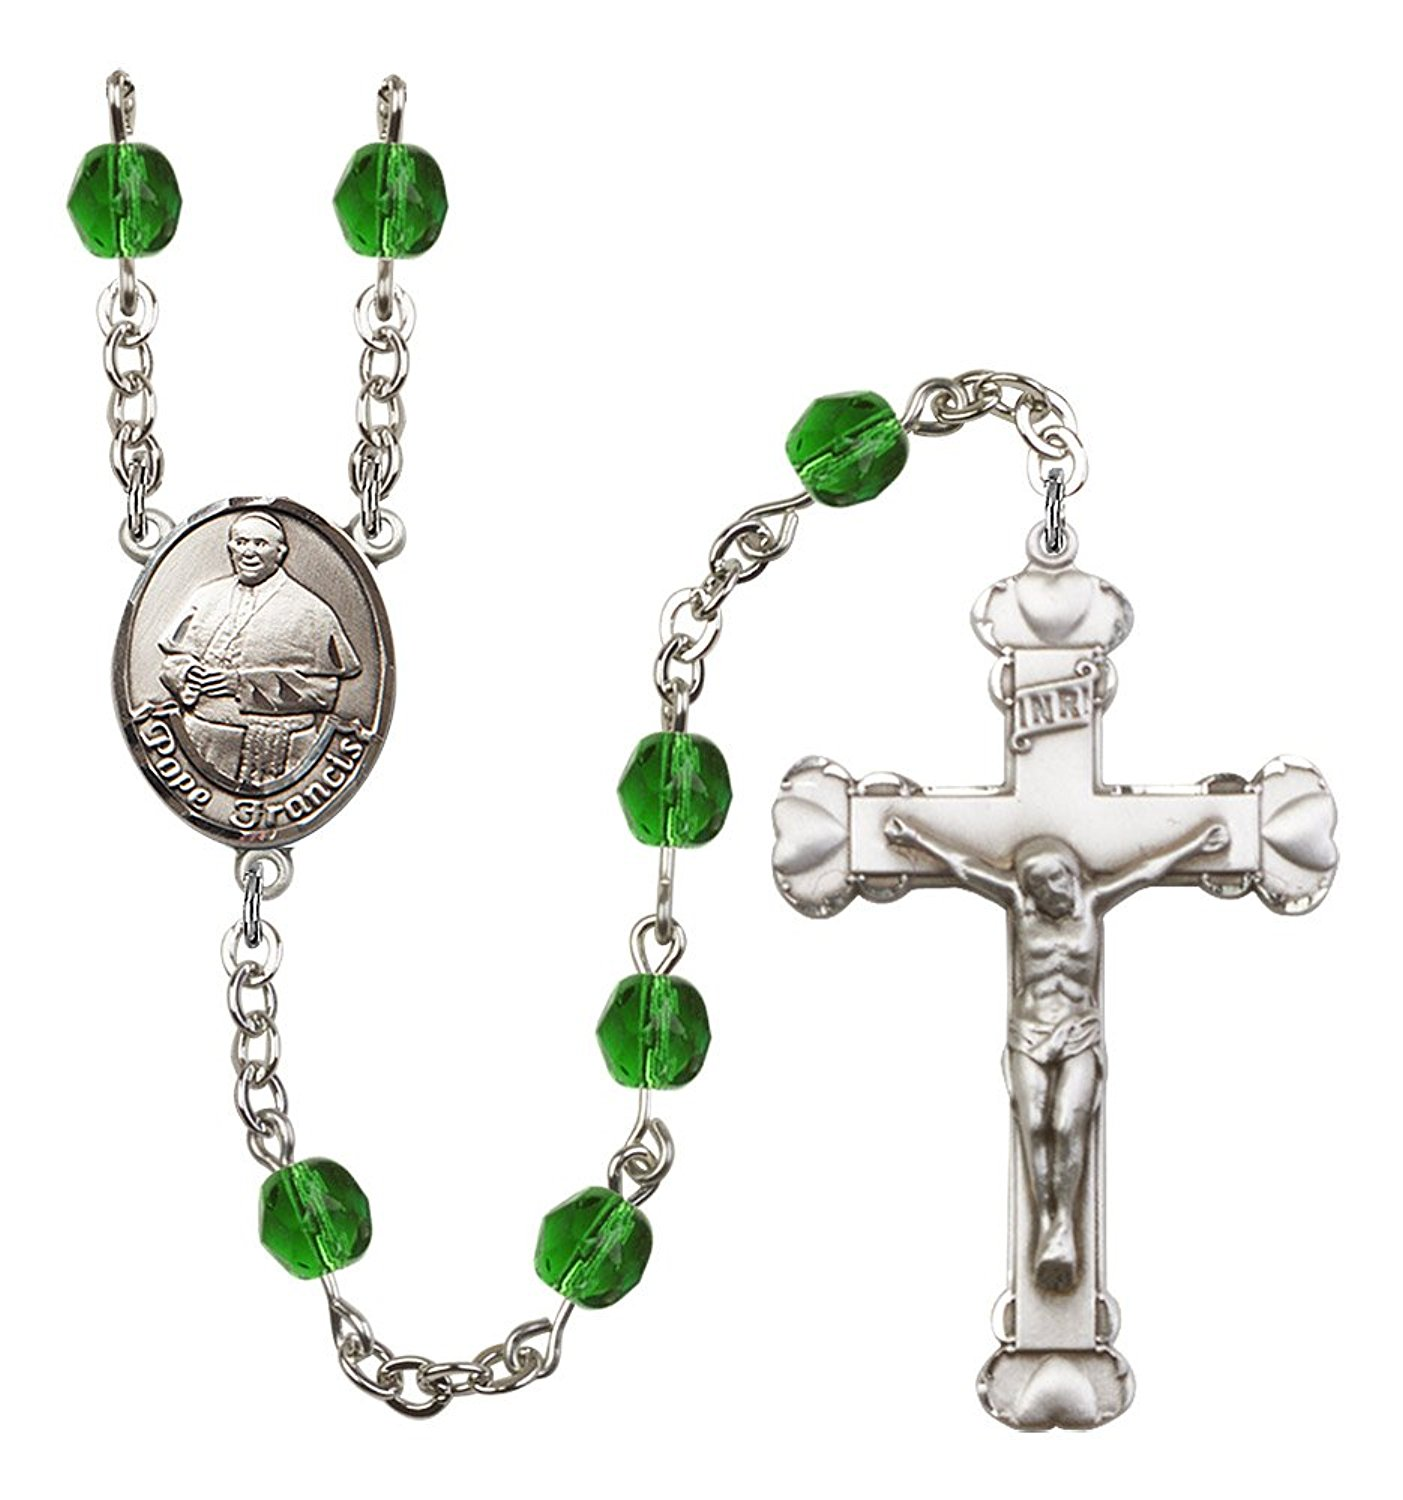 Silver Finish Pope Francis Rosary with 6mm Emerald Color Fire Polished Beads, Pope Francis Center, and 1 5/8 x 1 inch Crucifix, Gift Boxed